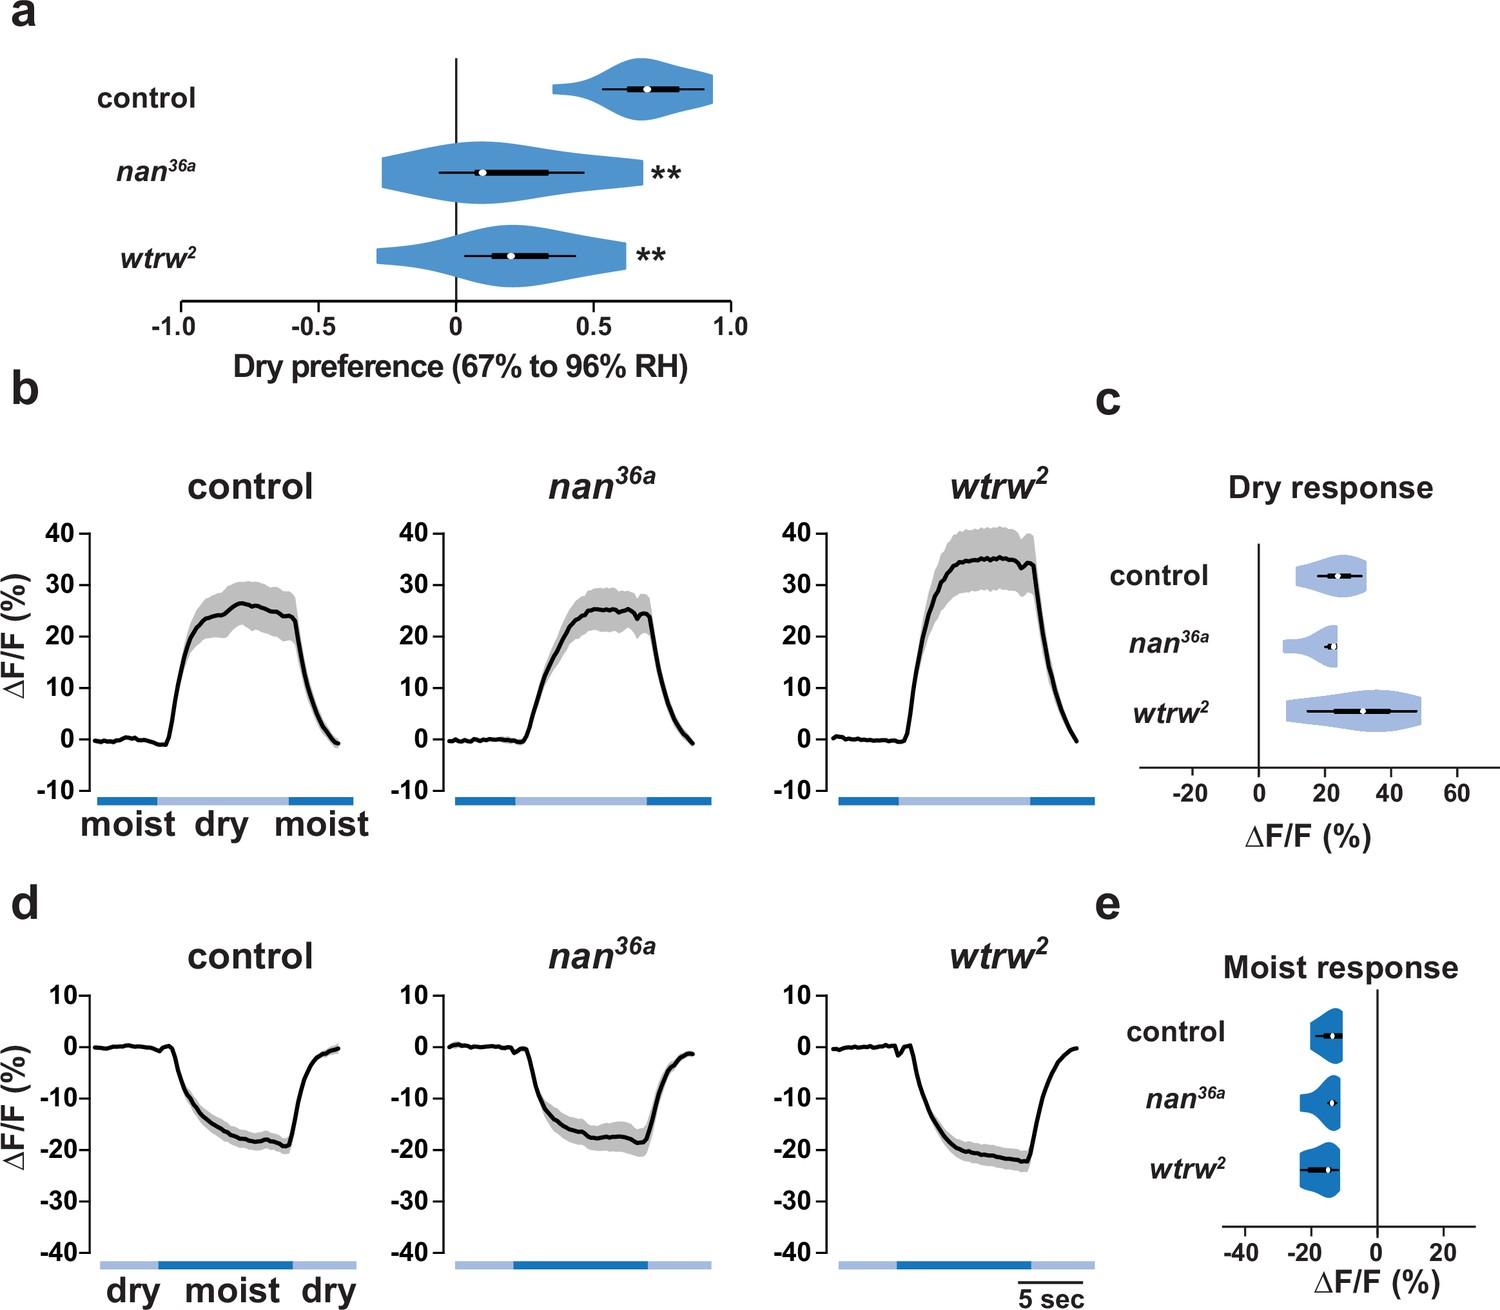 Distinct Combinations Of Variant Ionotropic Glutamate Receptors Besides Dish Work Rf Modulator On Wiring Diagram The Trp Channels Nanchung And Water Witch Do Not Mediate Ir Dependent Dry Sensation